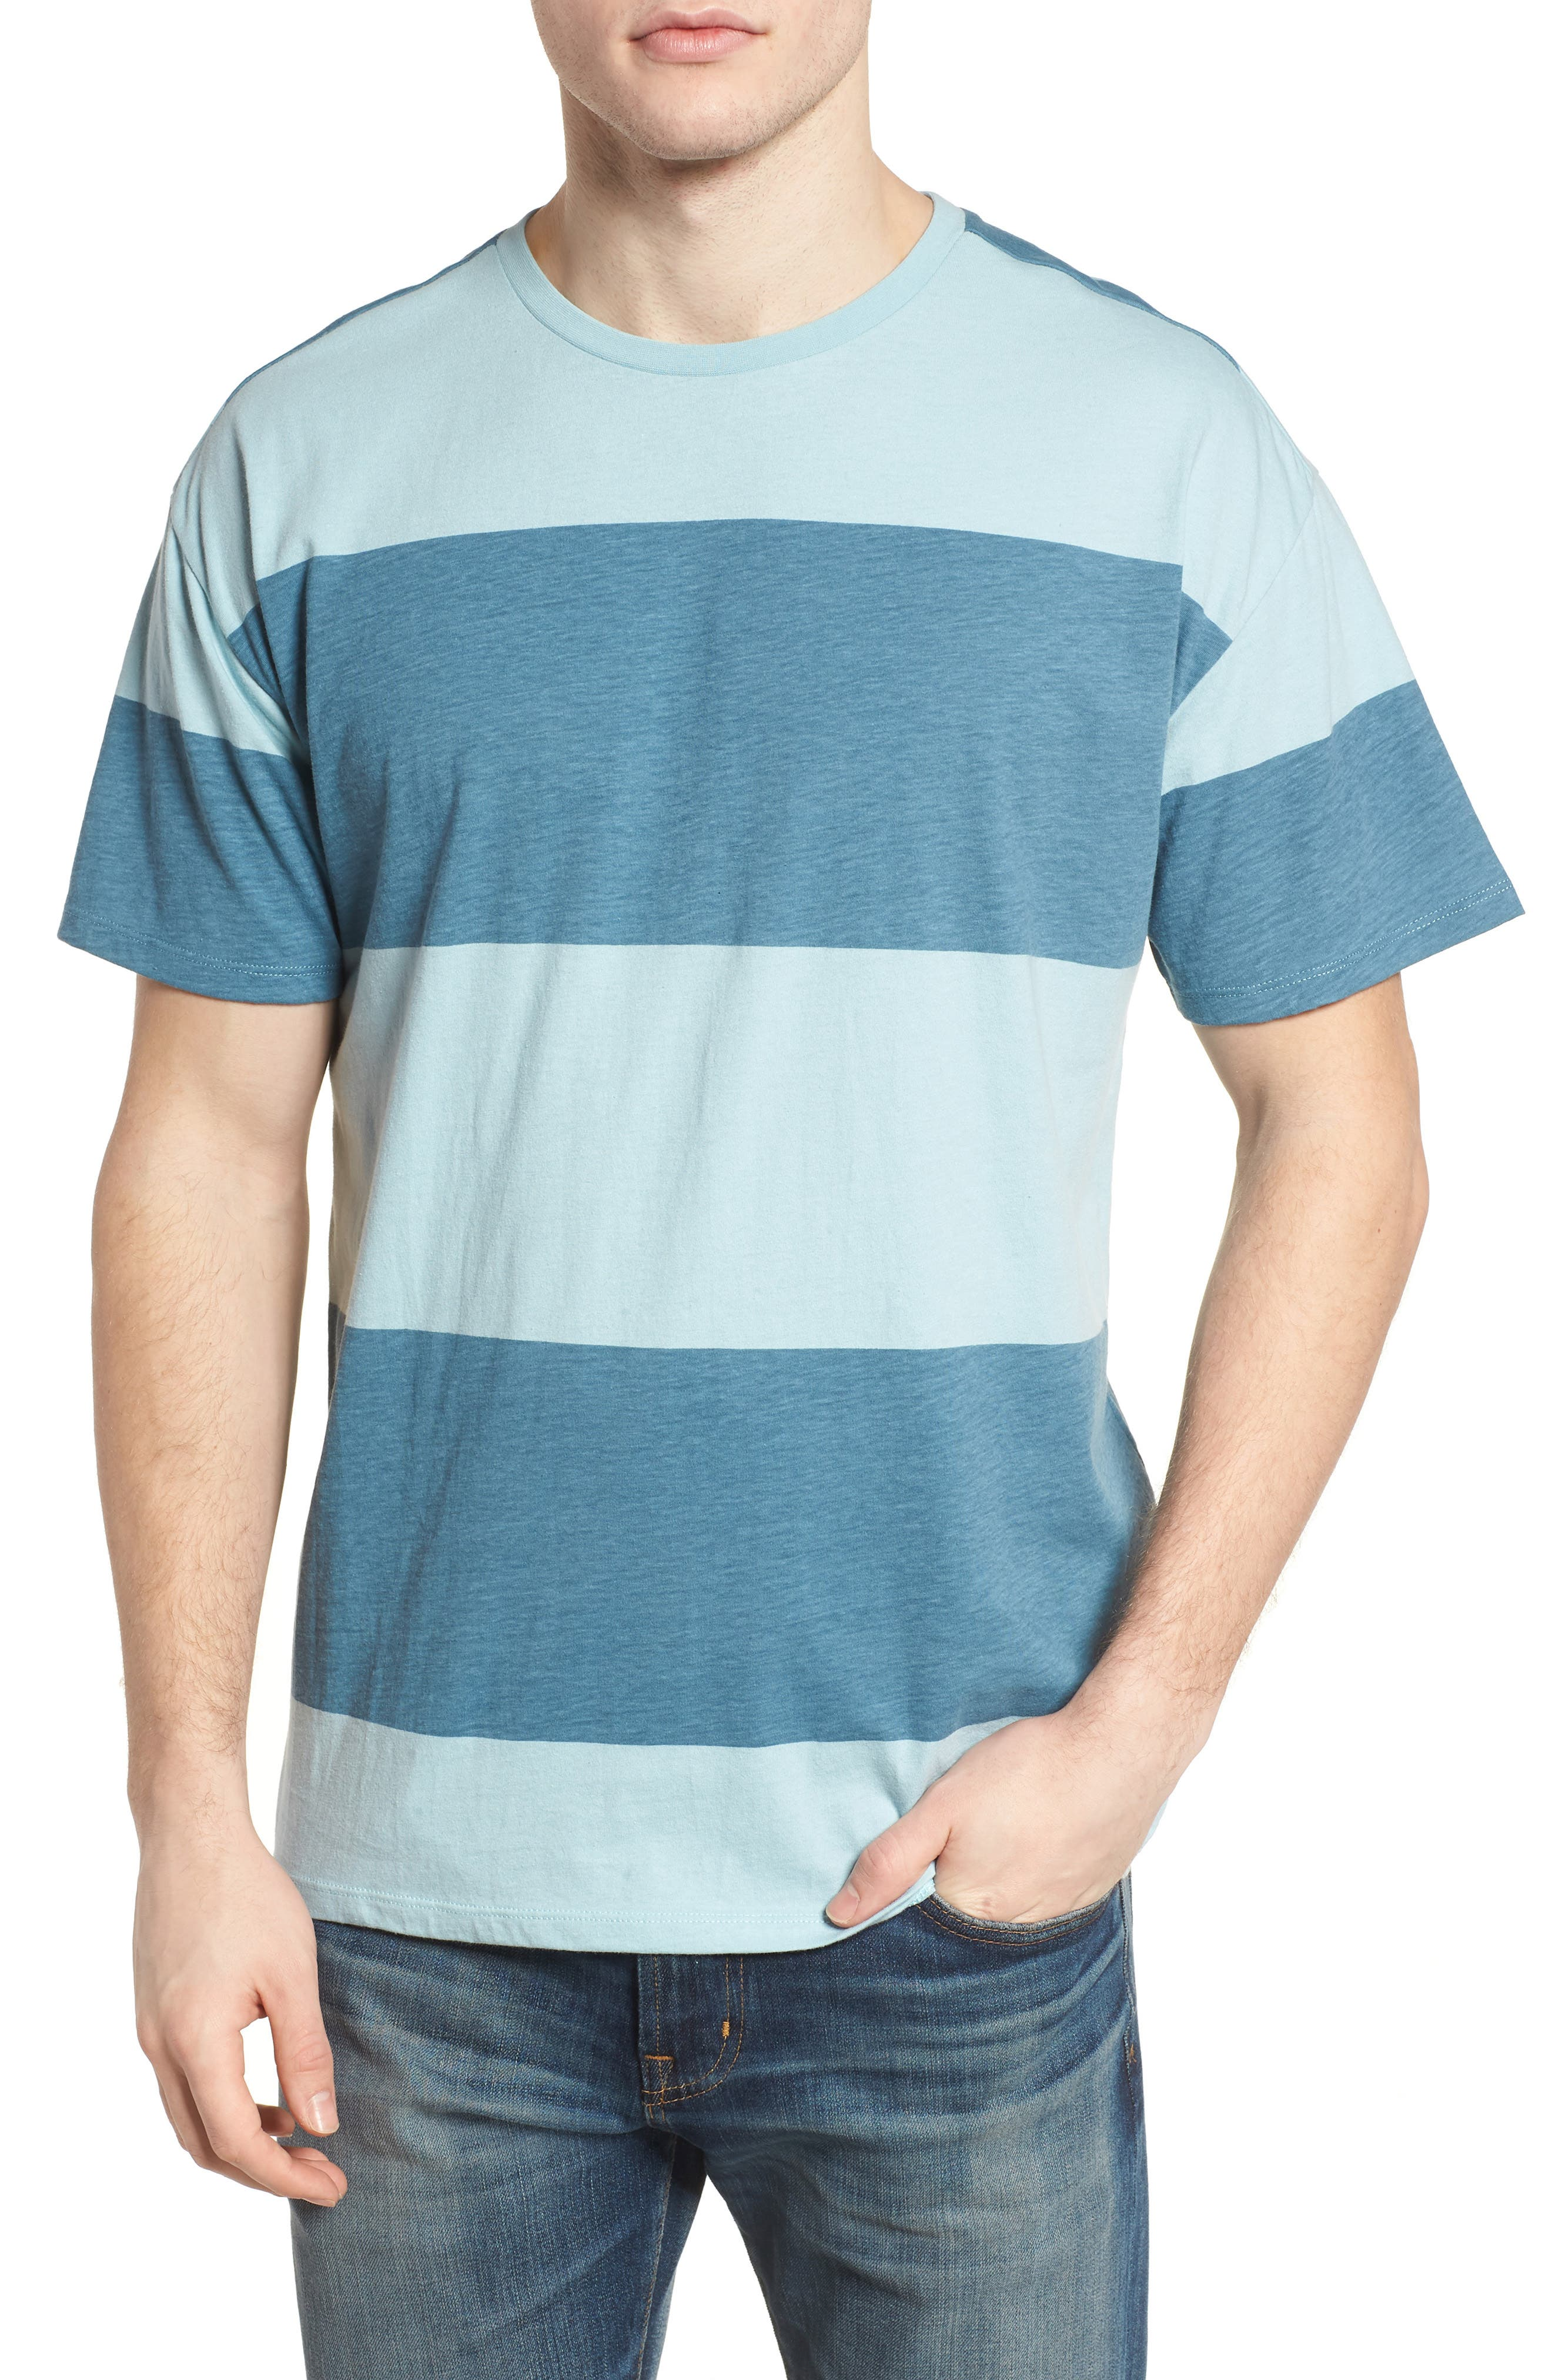 Rugby T-Shirt,                             Main thumbnail 1, color,                             Noise Aqua / Obsidian